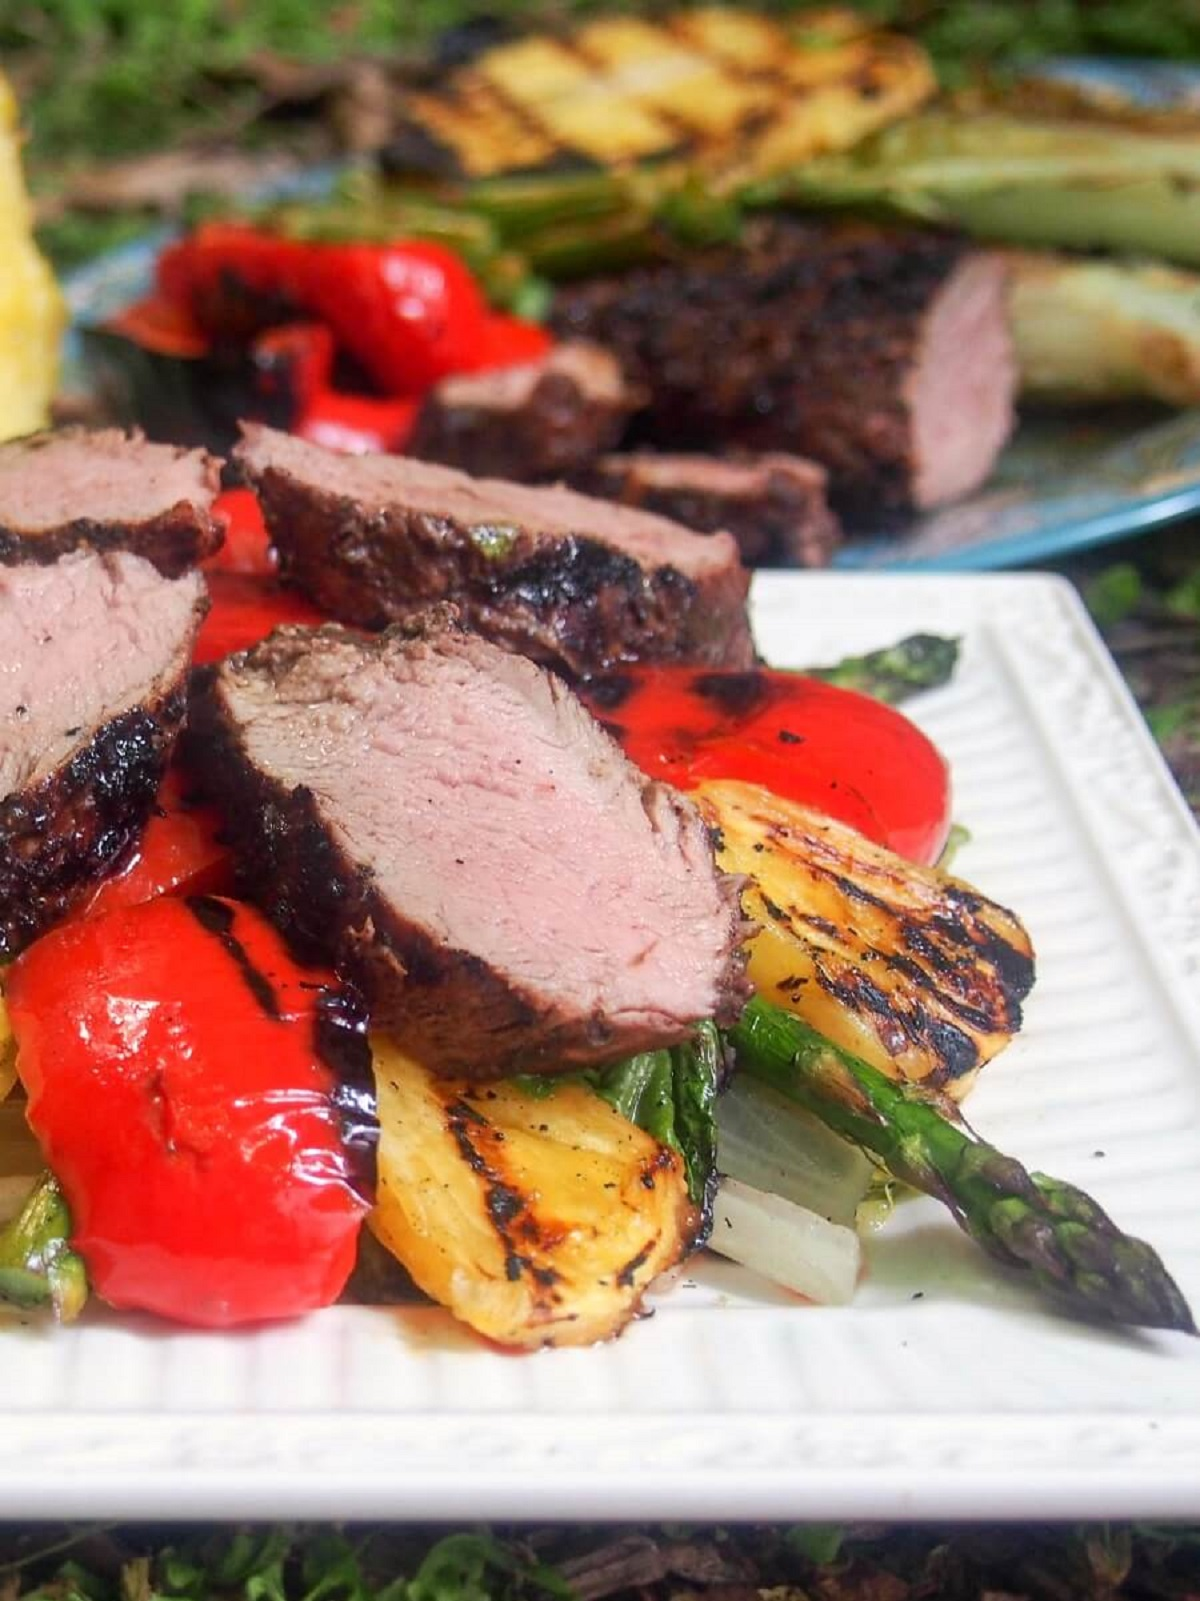 Grilled pork and pineapple salad with asparagus on a white platter